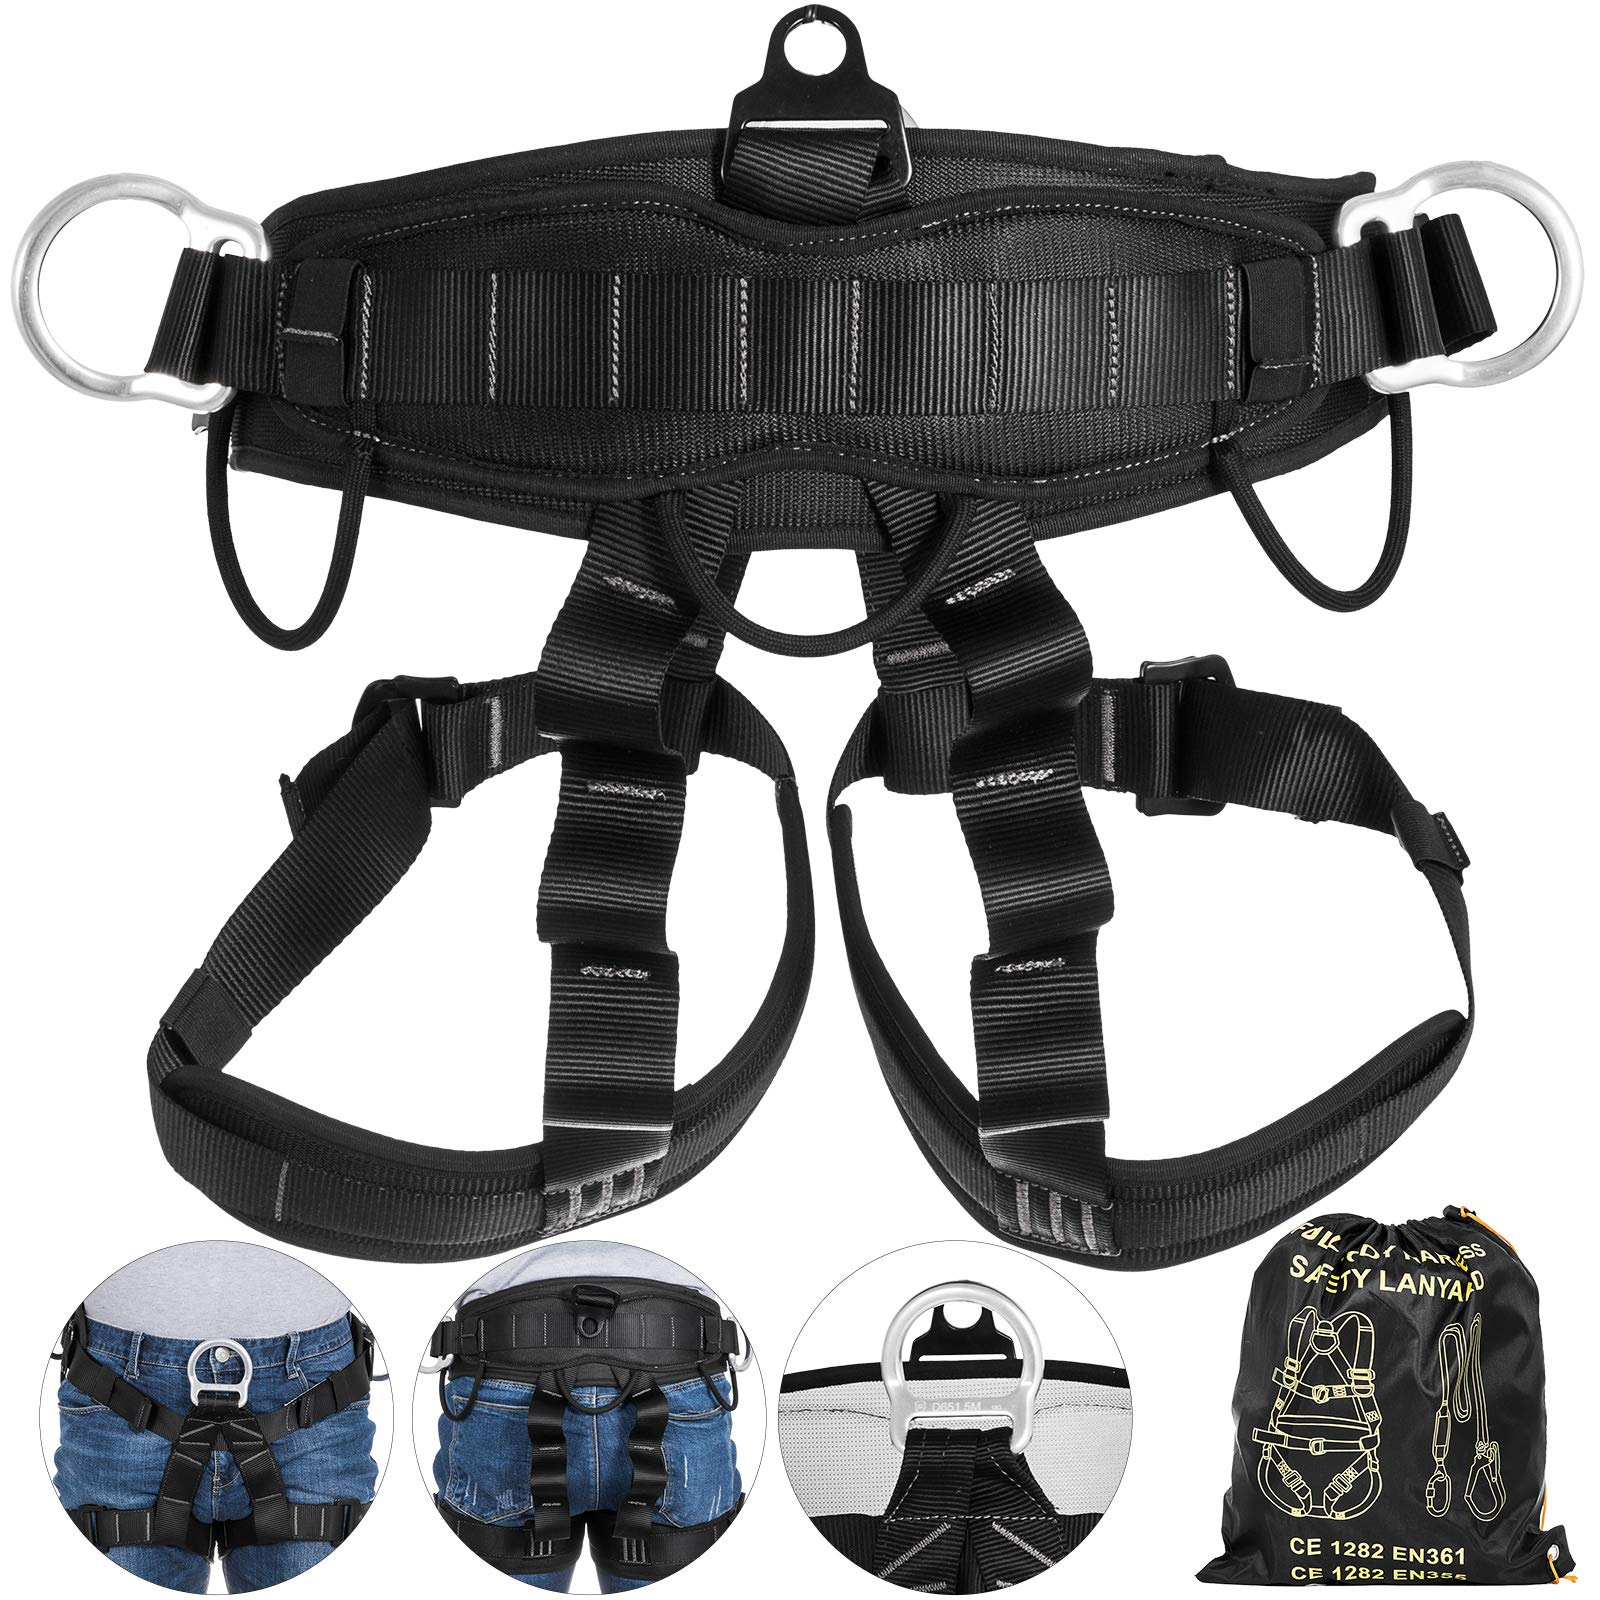 Happybuy Climbing Harness Fall Protection Rock Climbing Equip Gear Rappelling Harness with 3 D-Rings for Rock Climbing Rappelling Downhill Skiing by Happybuy